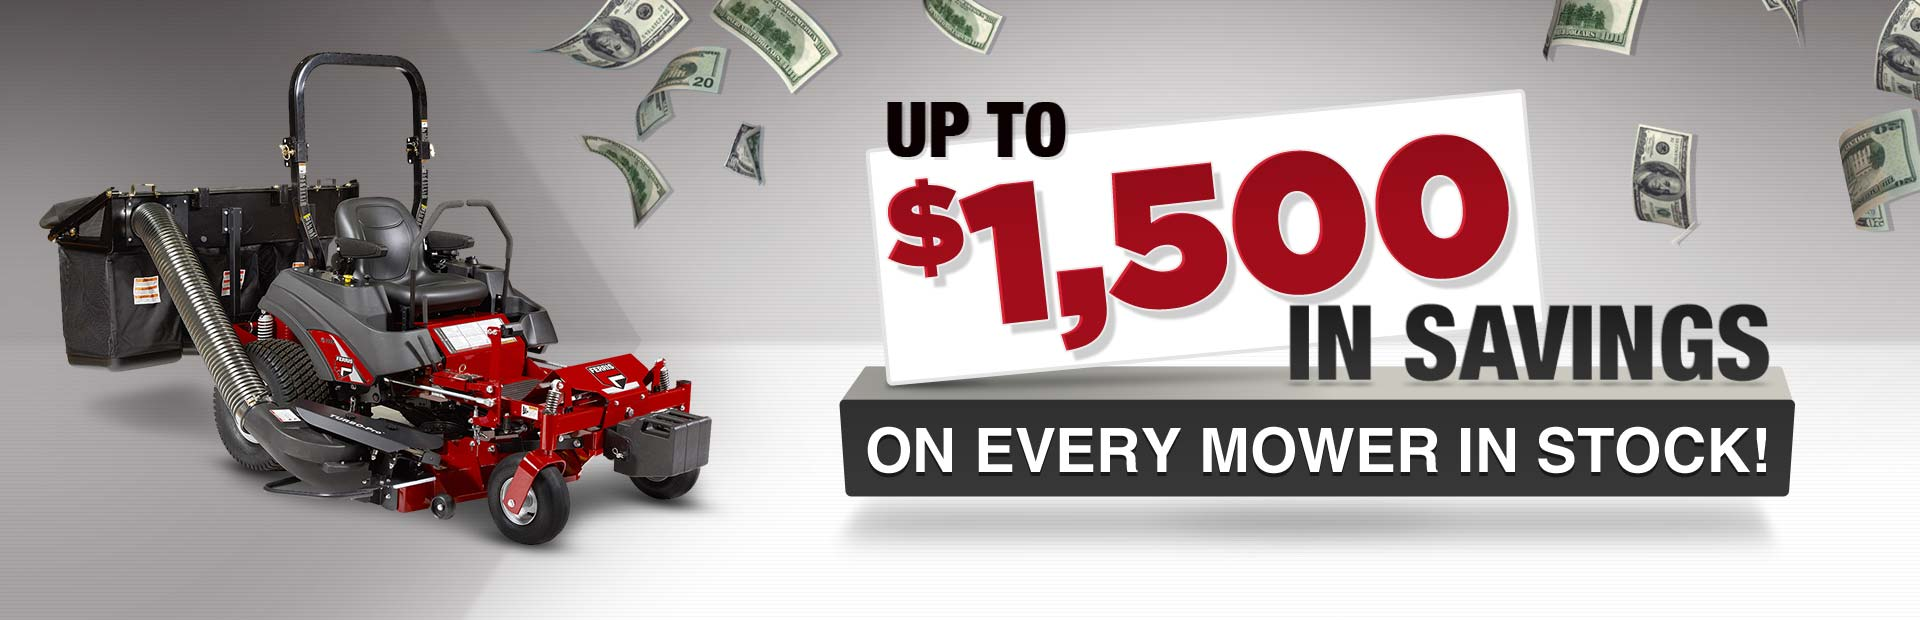 Get up to $1,500 in savings on every mower in stock!